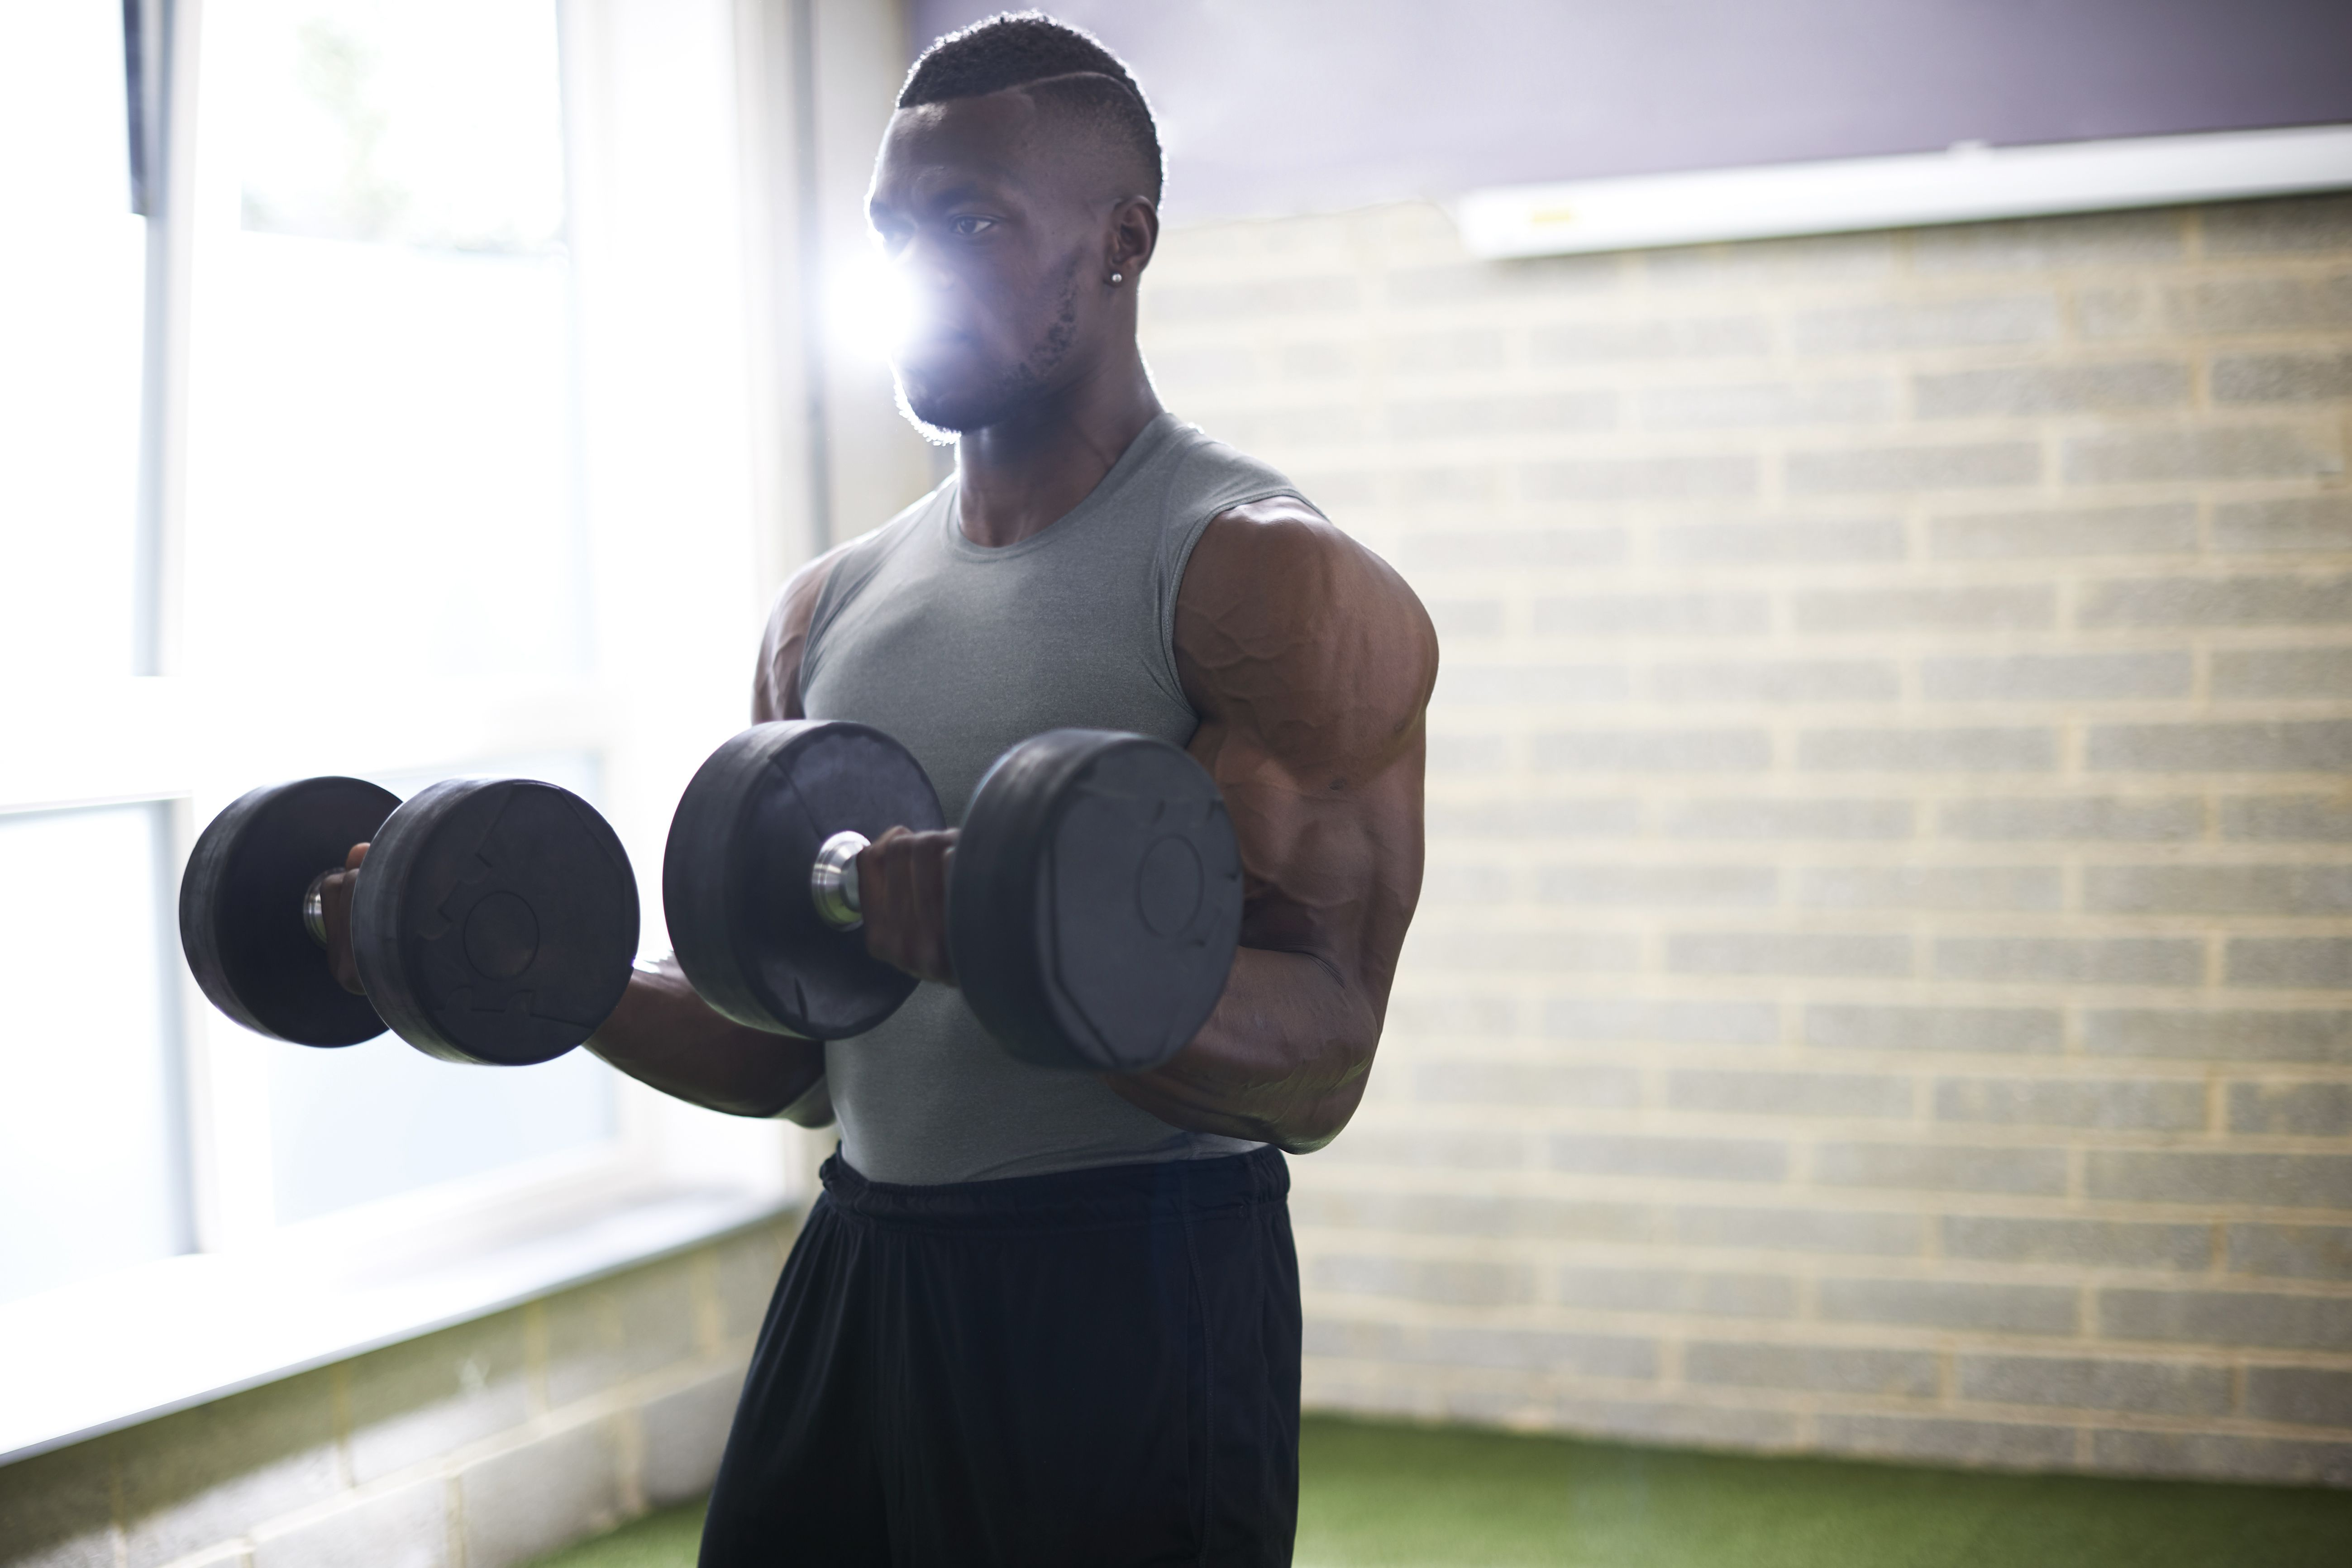 The 15-Minute Workout That Builds Bigger Arms